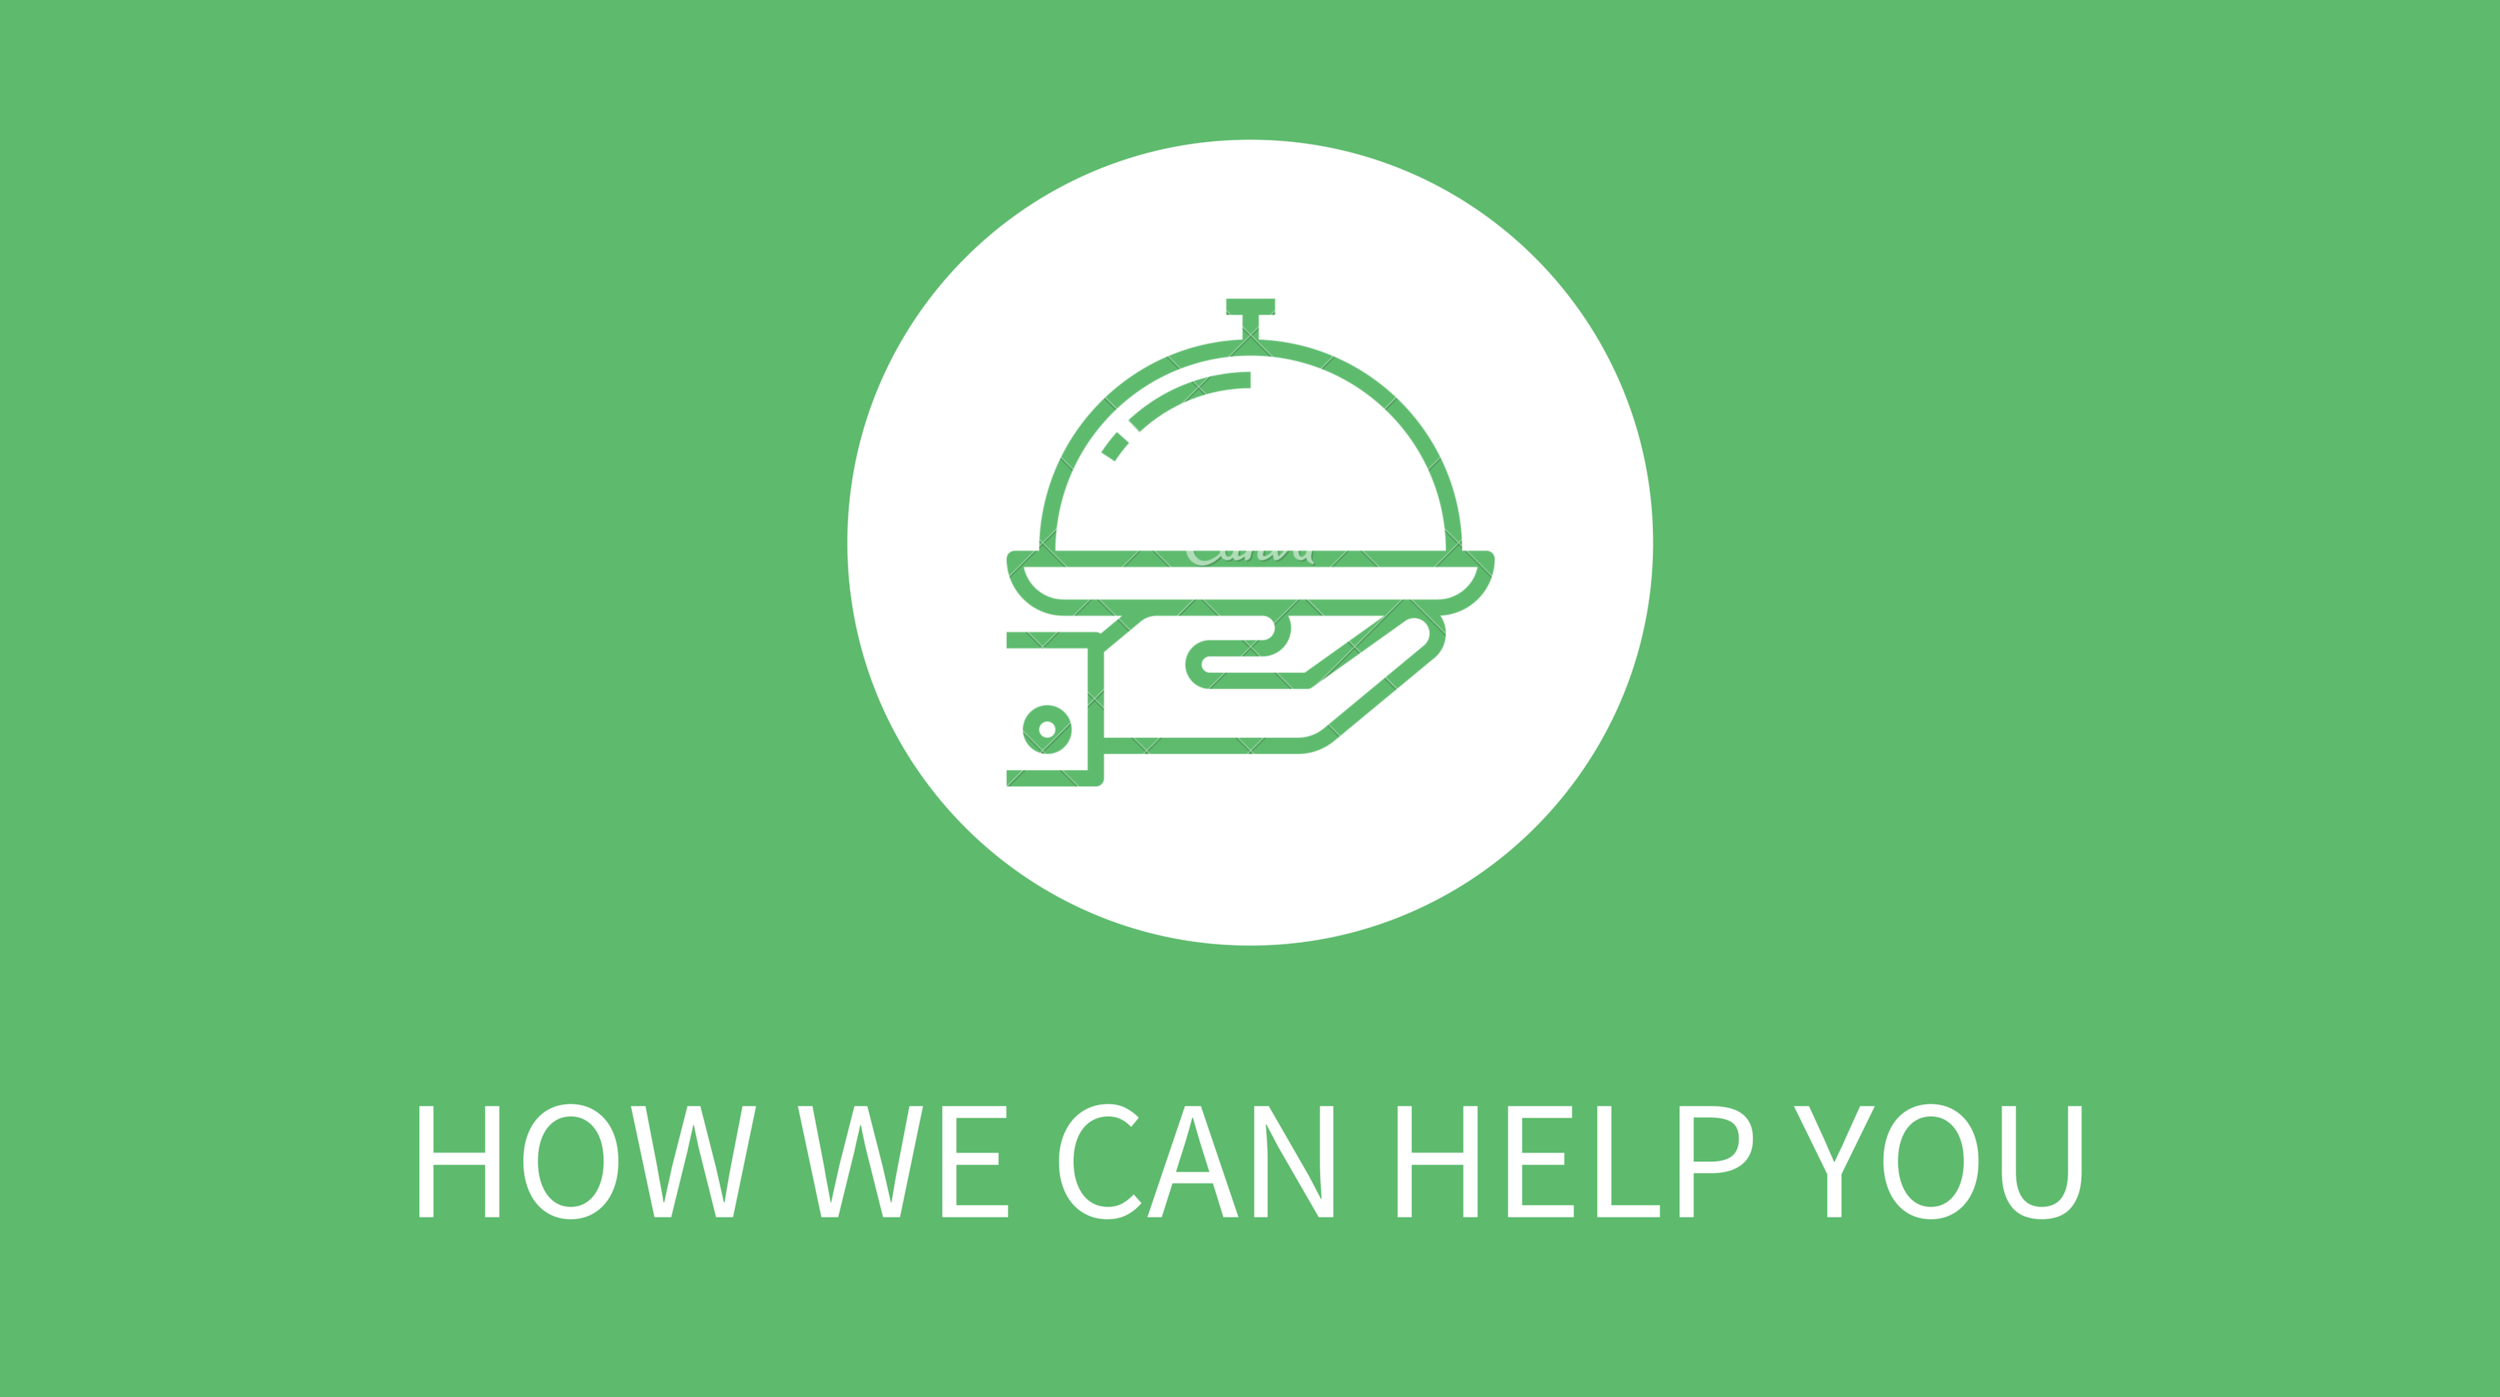 Copy of HOW WE CAN HELP YOU-3.png